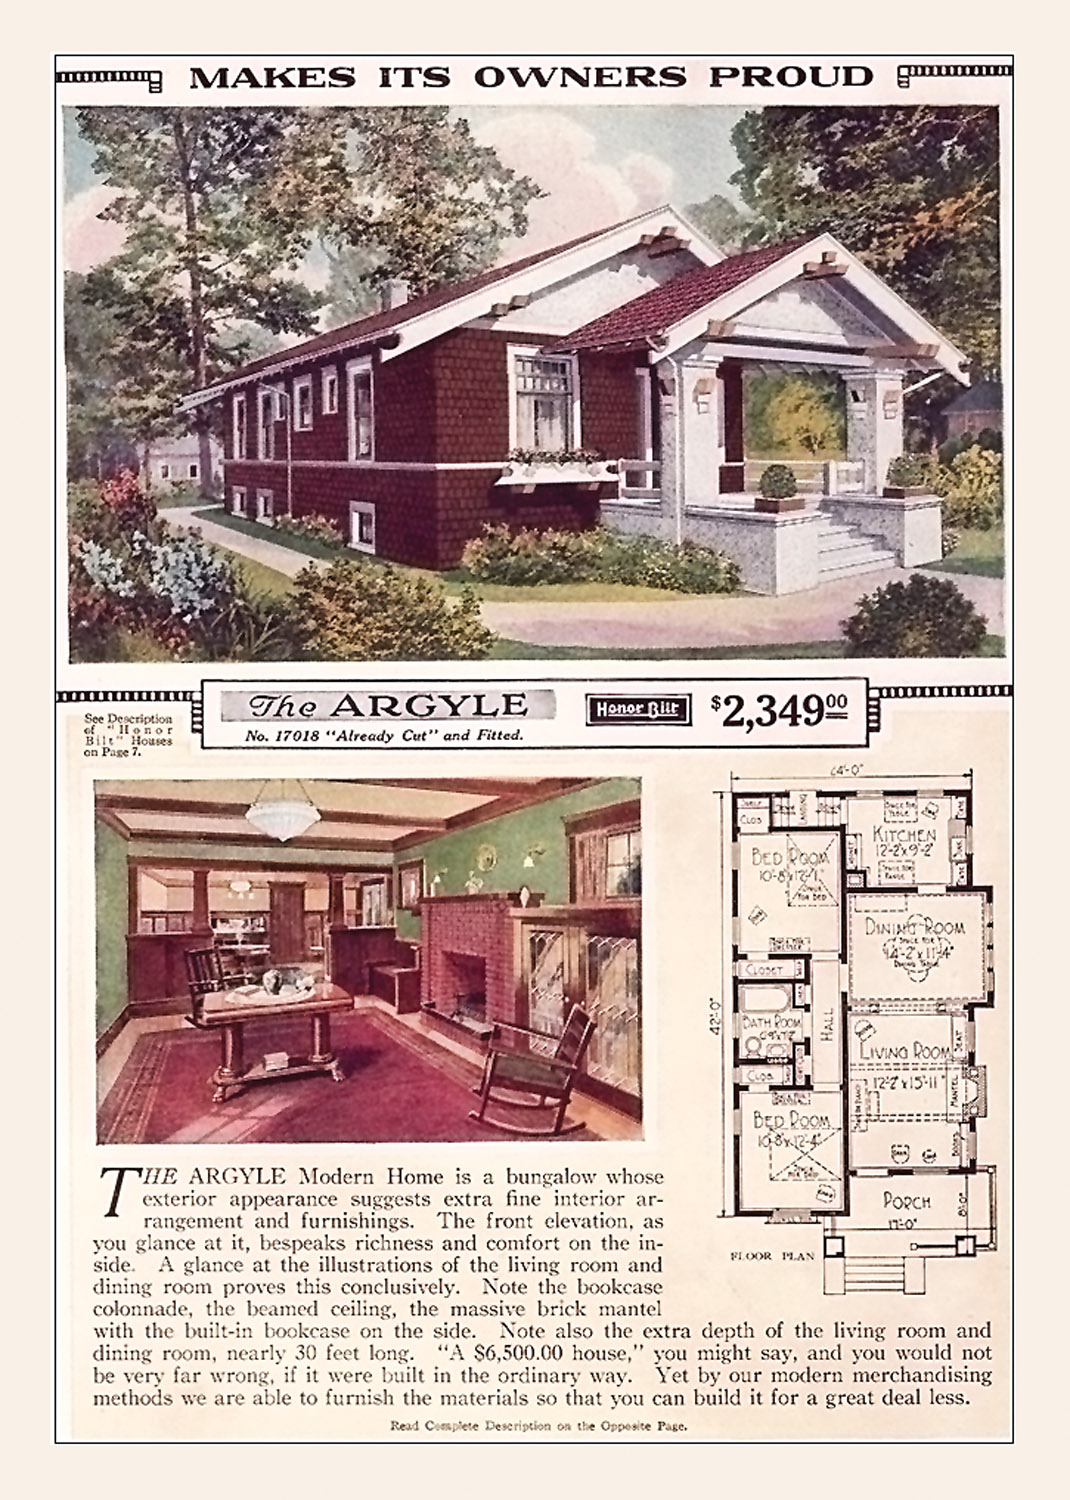 The 'Argyle' plan in 1923, with its floor plan and an interior rendering.